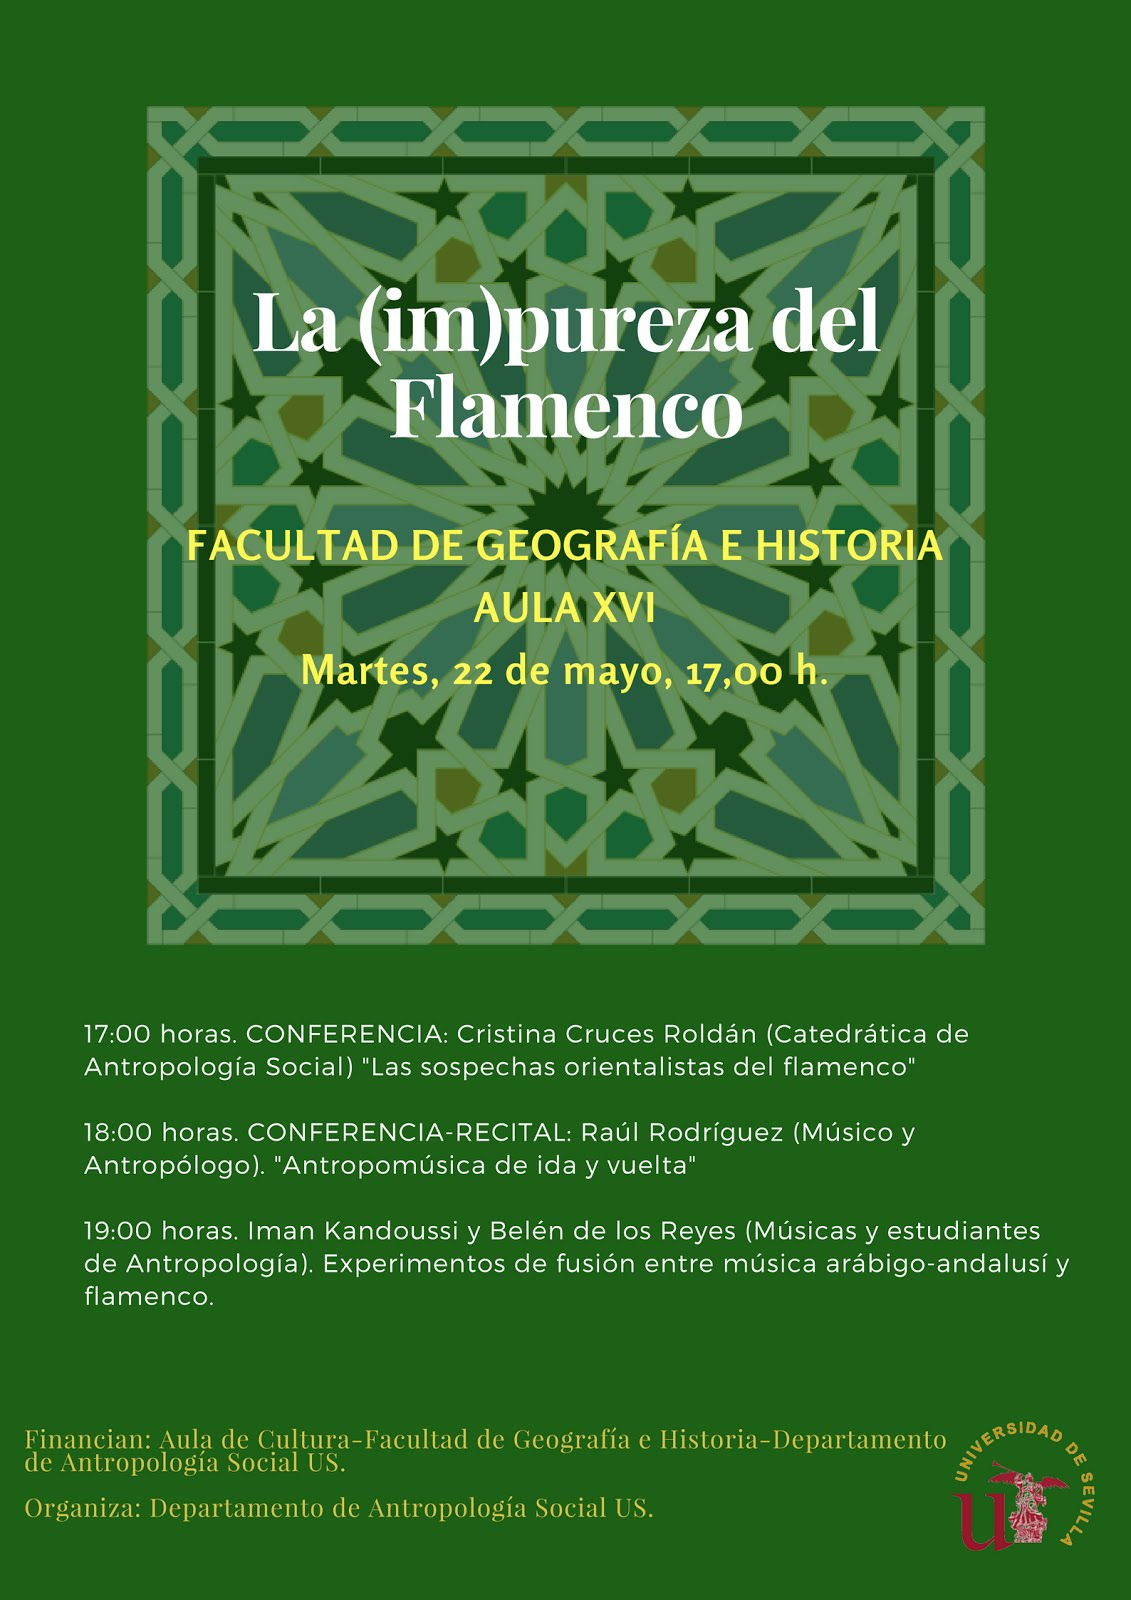 CONFERENCIAS SOBRE FLAMENCO